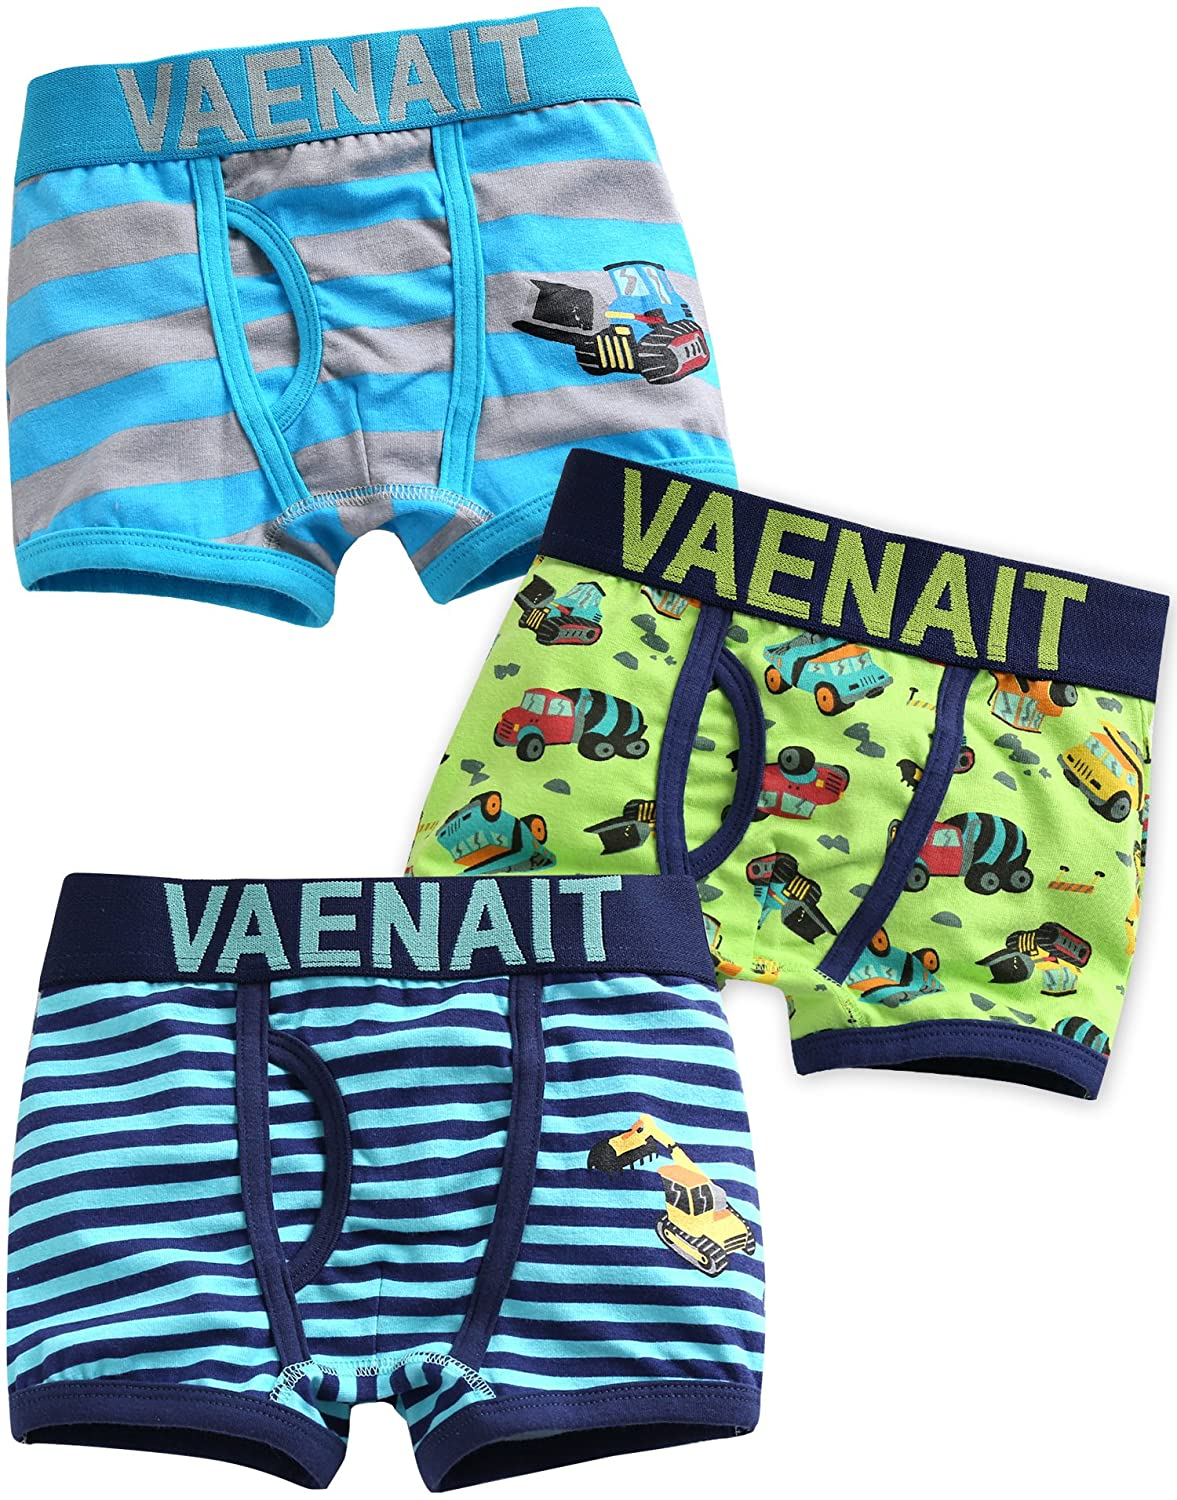 Vaenait baby 2-7 Years Boys 100/% Cotton Underwear Briefs 3 Pack Set Boxer Crane